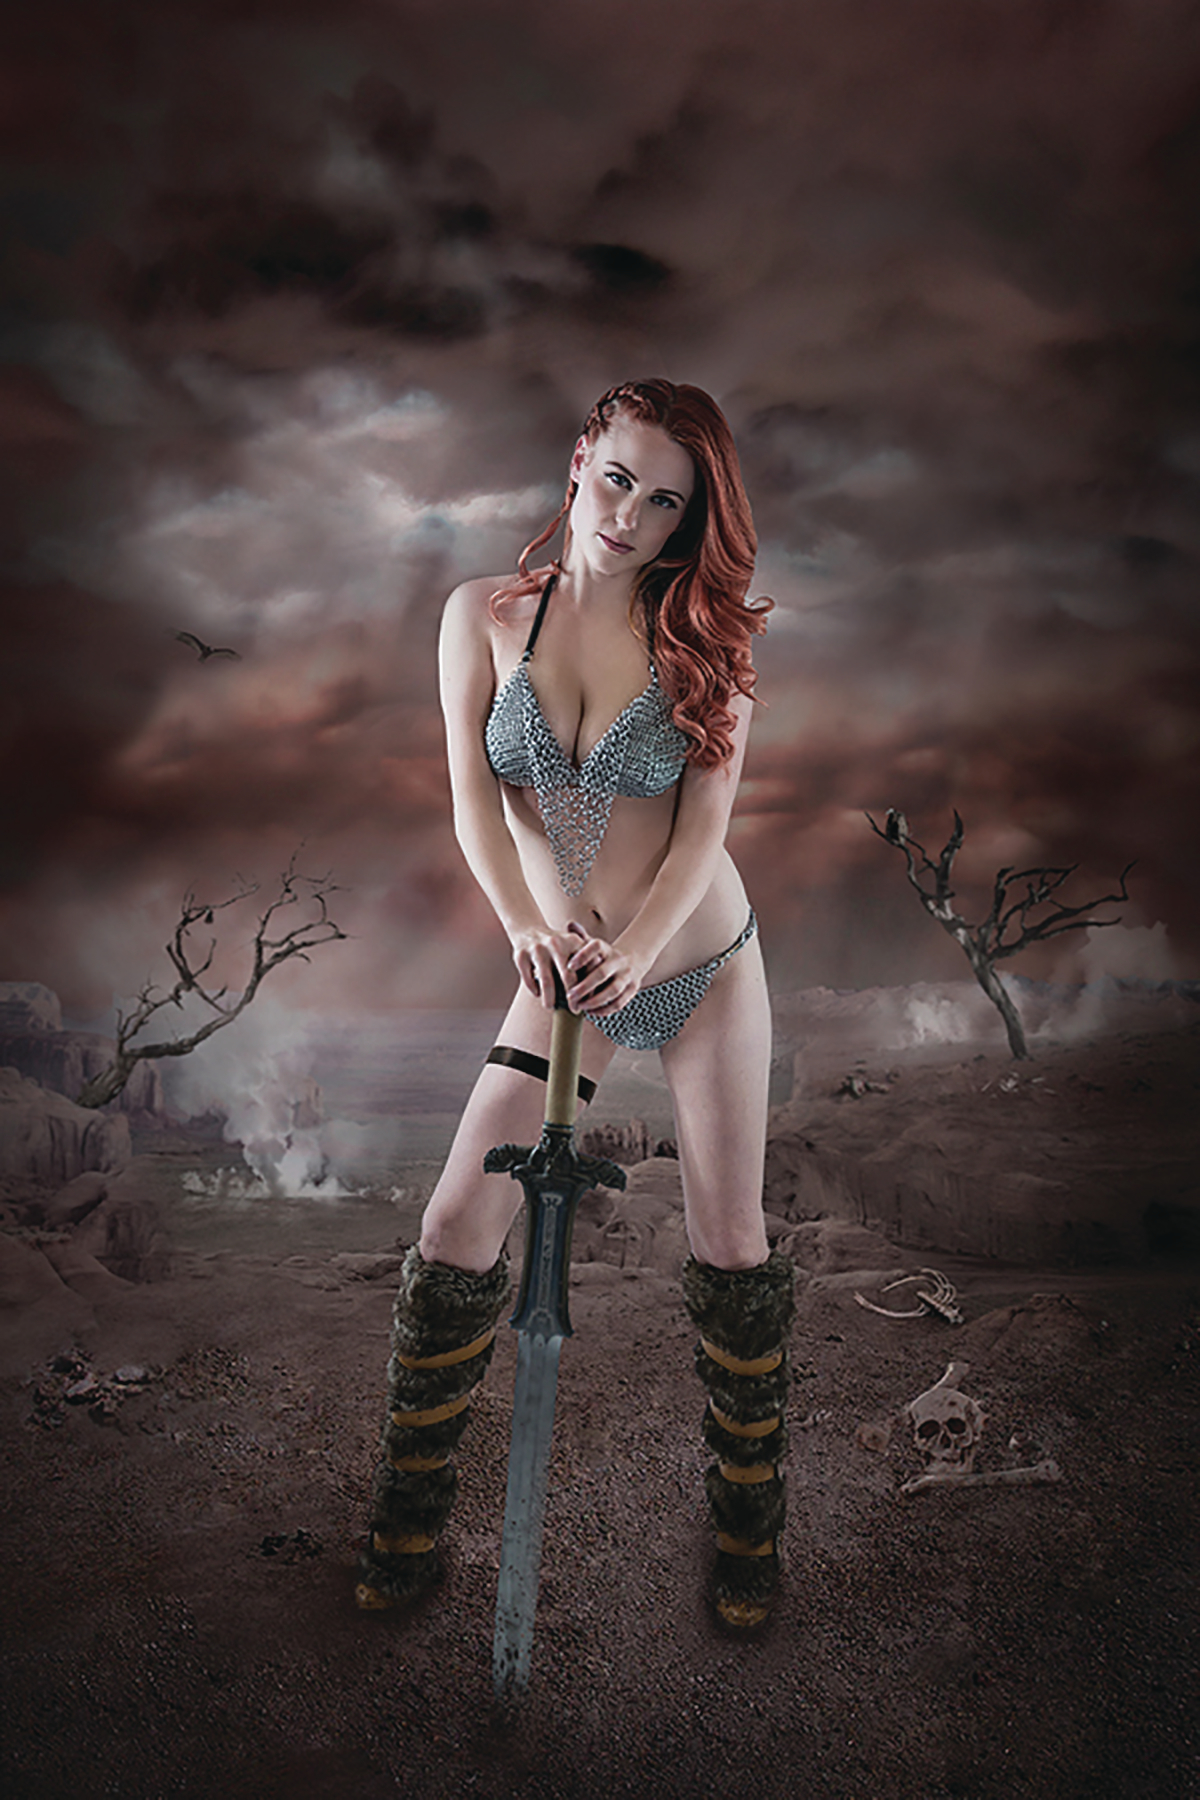 RED SONJA BIRTH OF SHE DEVIL #1 SGN COSPLAY VIRGIN CVR